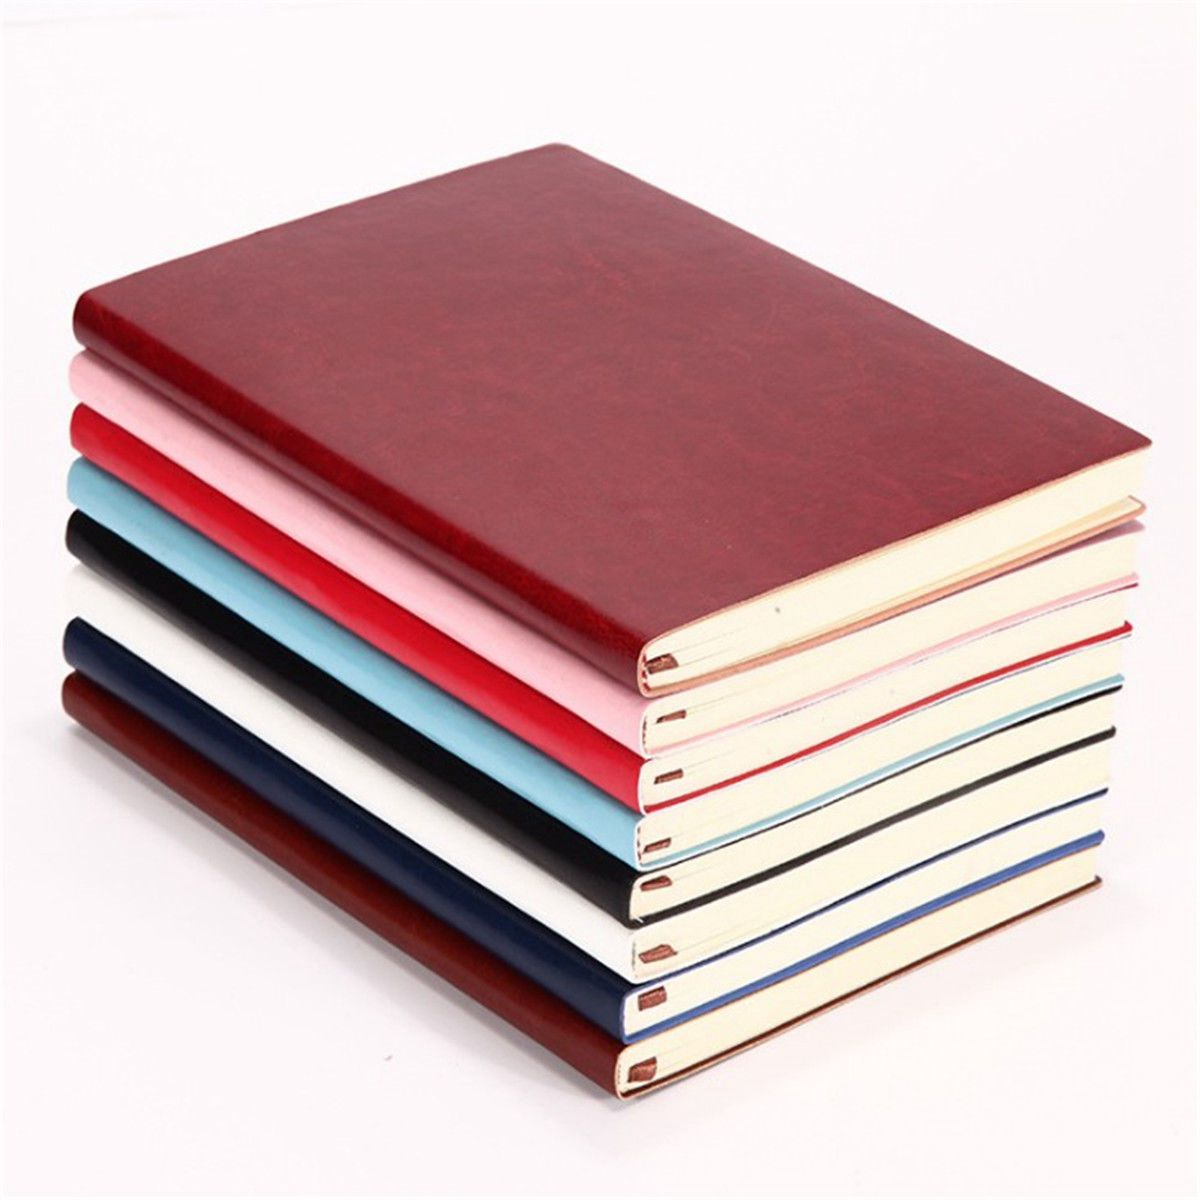 6 Color Random Soft Cover PU Leather Notebook Writing Journal 100 Page Lined Diary Book battle beast page 6 page 3 page 3 page 6